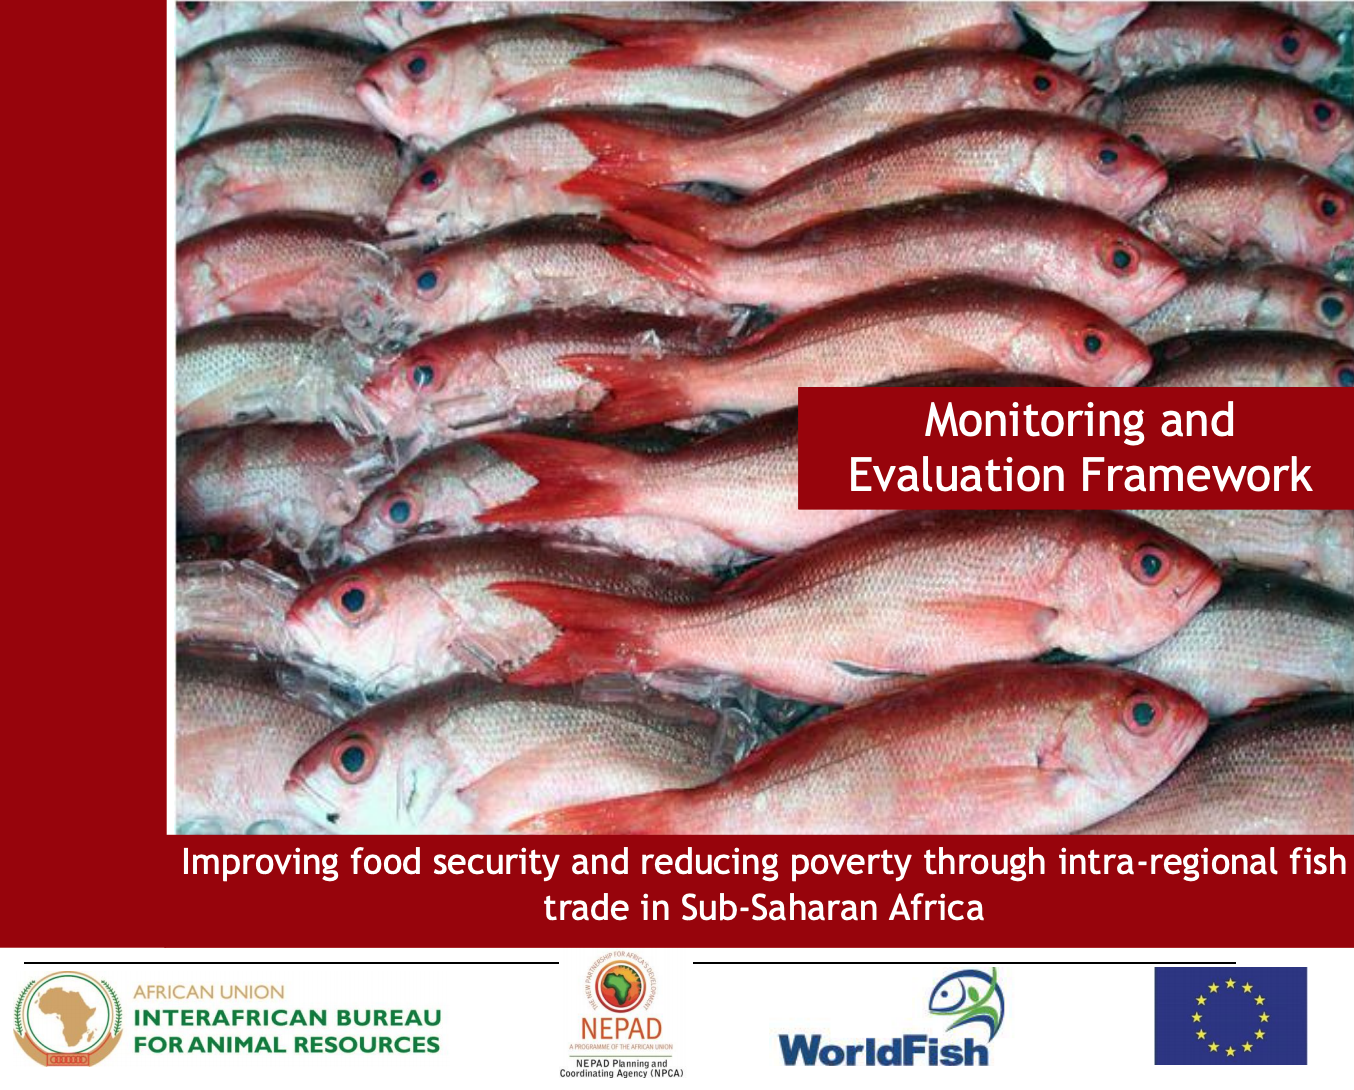 Monitoring and Evaluation Framework: Improving food security & reducing poverty through intra-regional fish trade